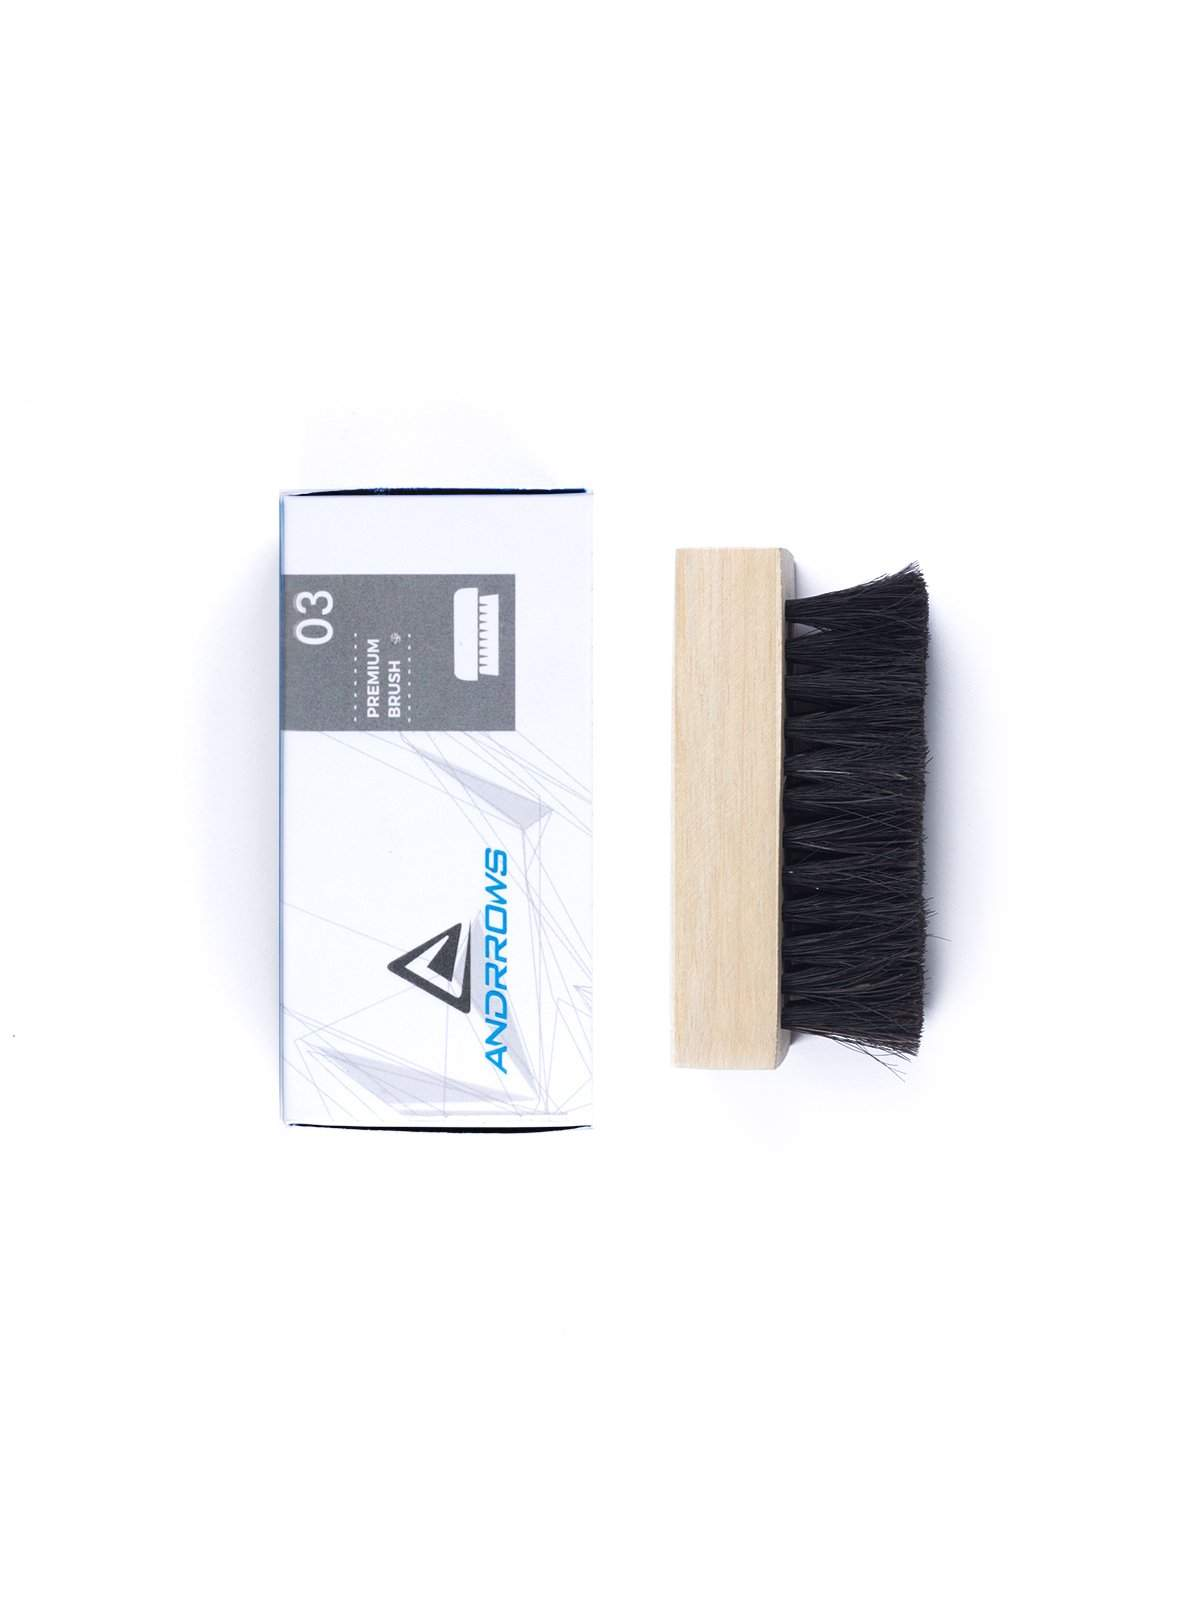 Andrrows Premium Brush - MORE by Morello Indonesia